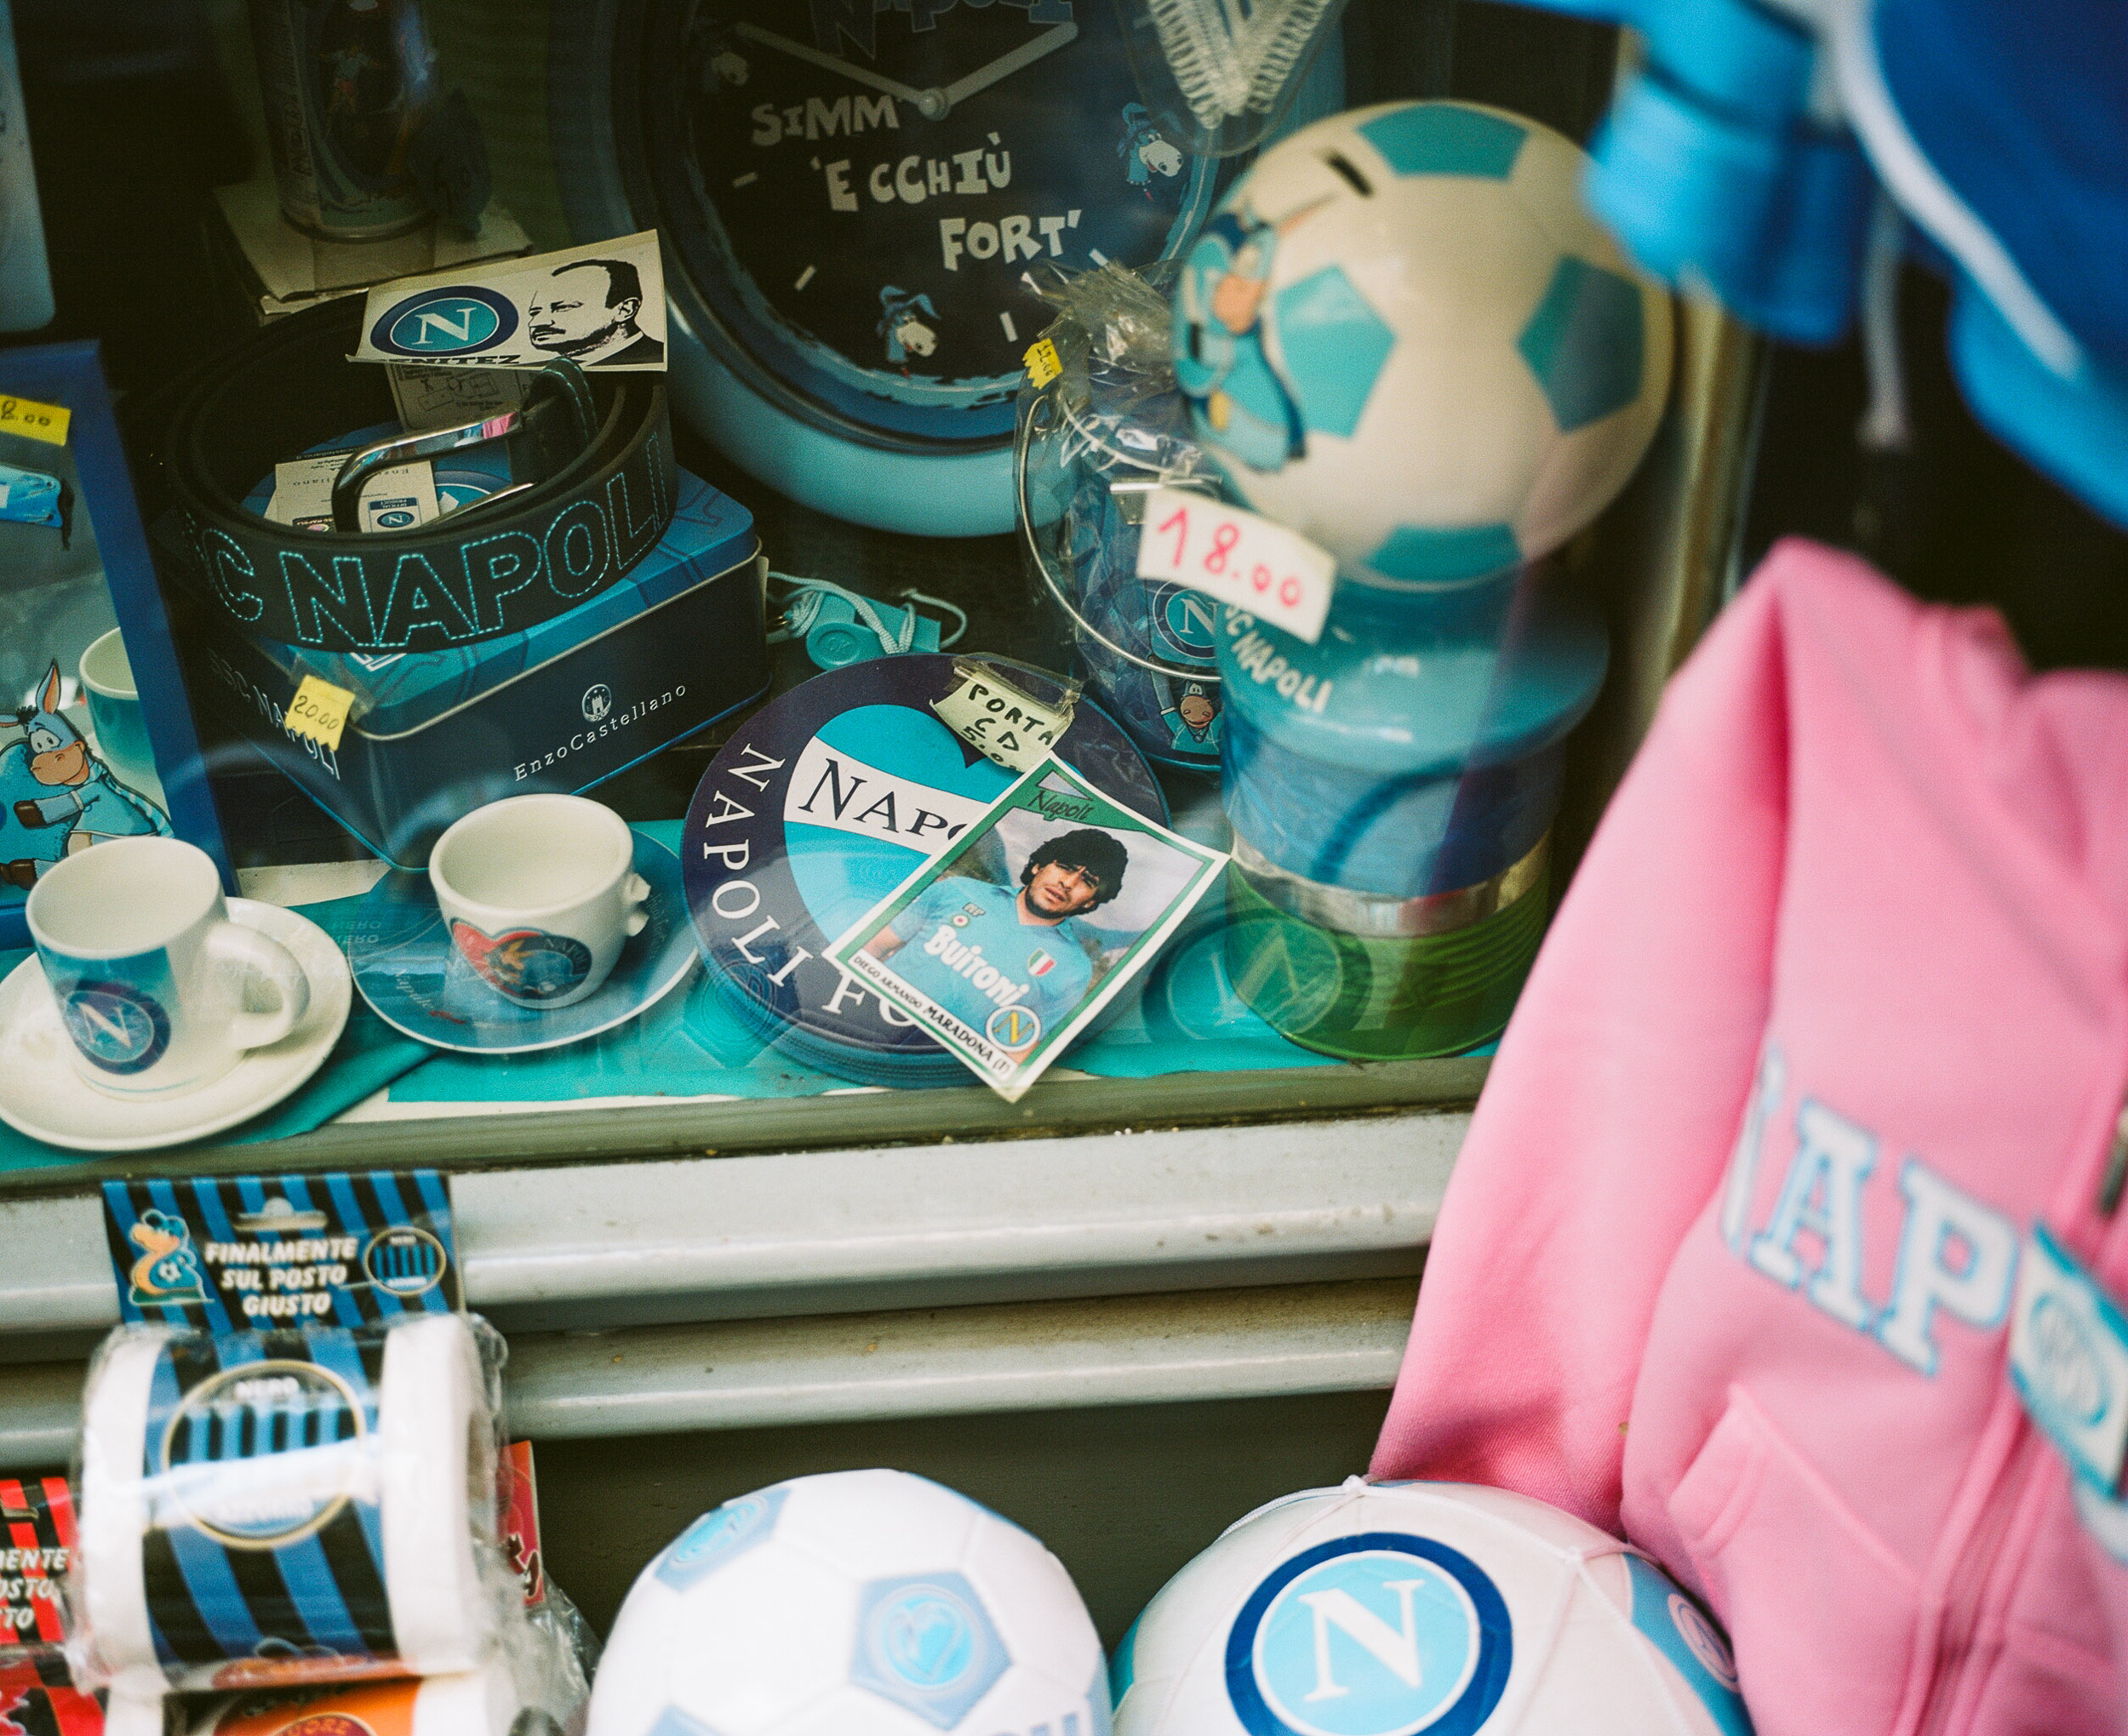 Maradona card and other sports paraphinalia in a window in Naples, Italy